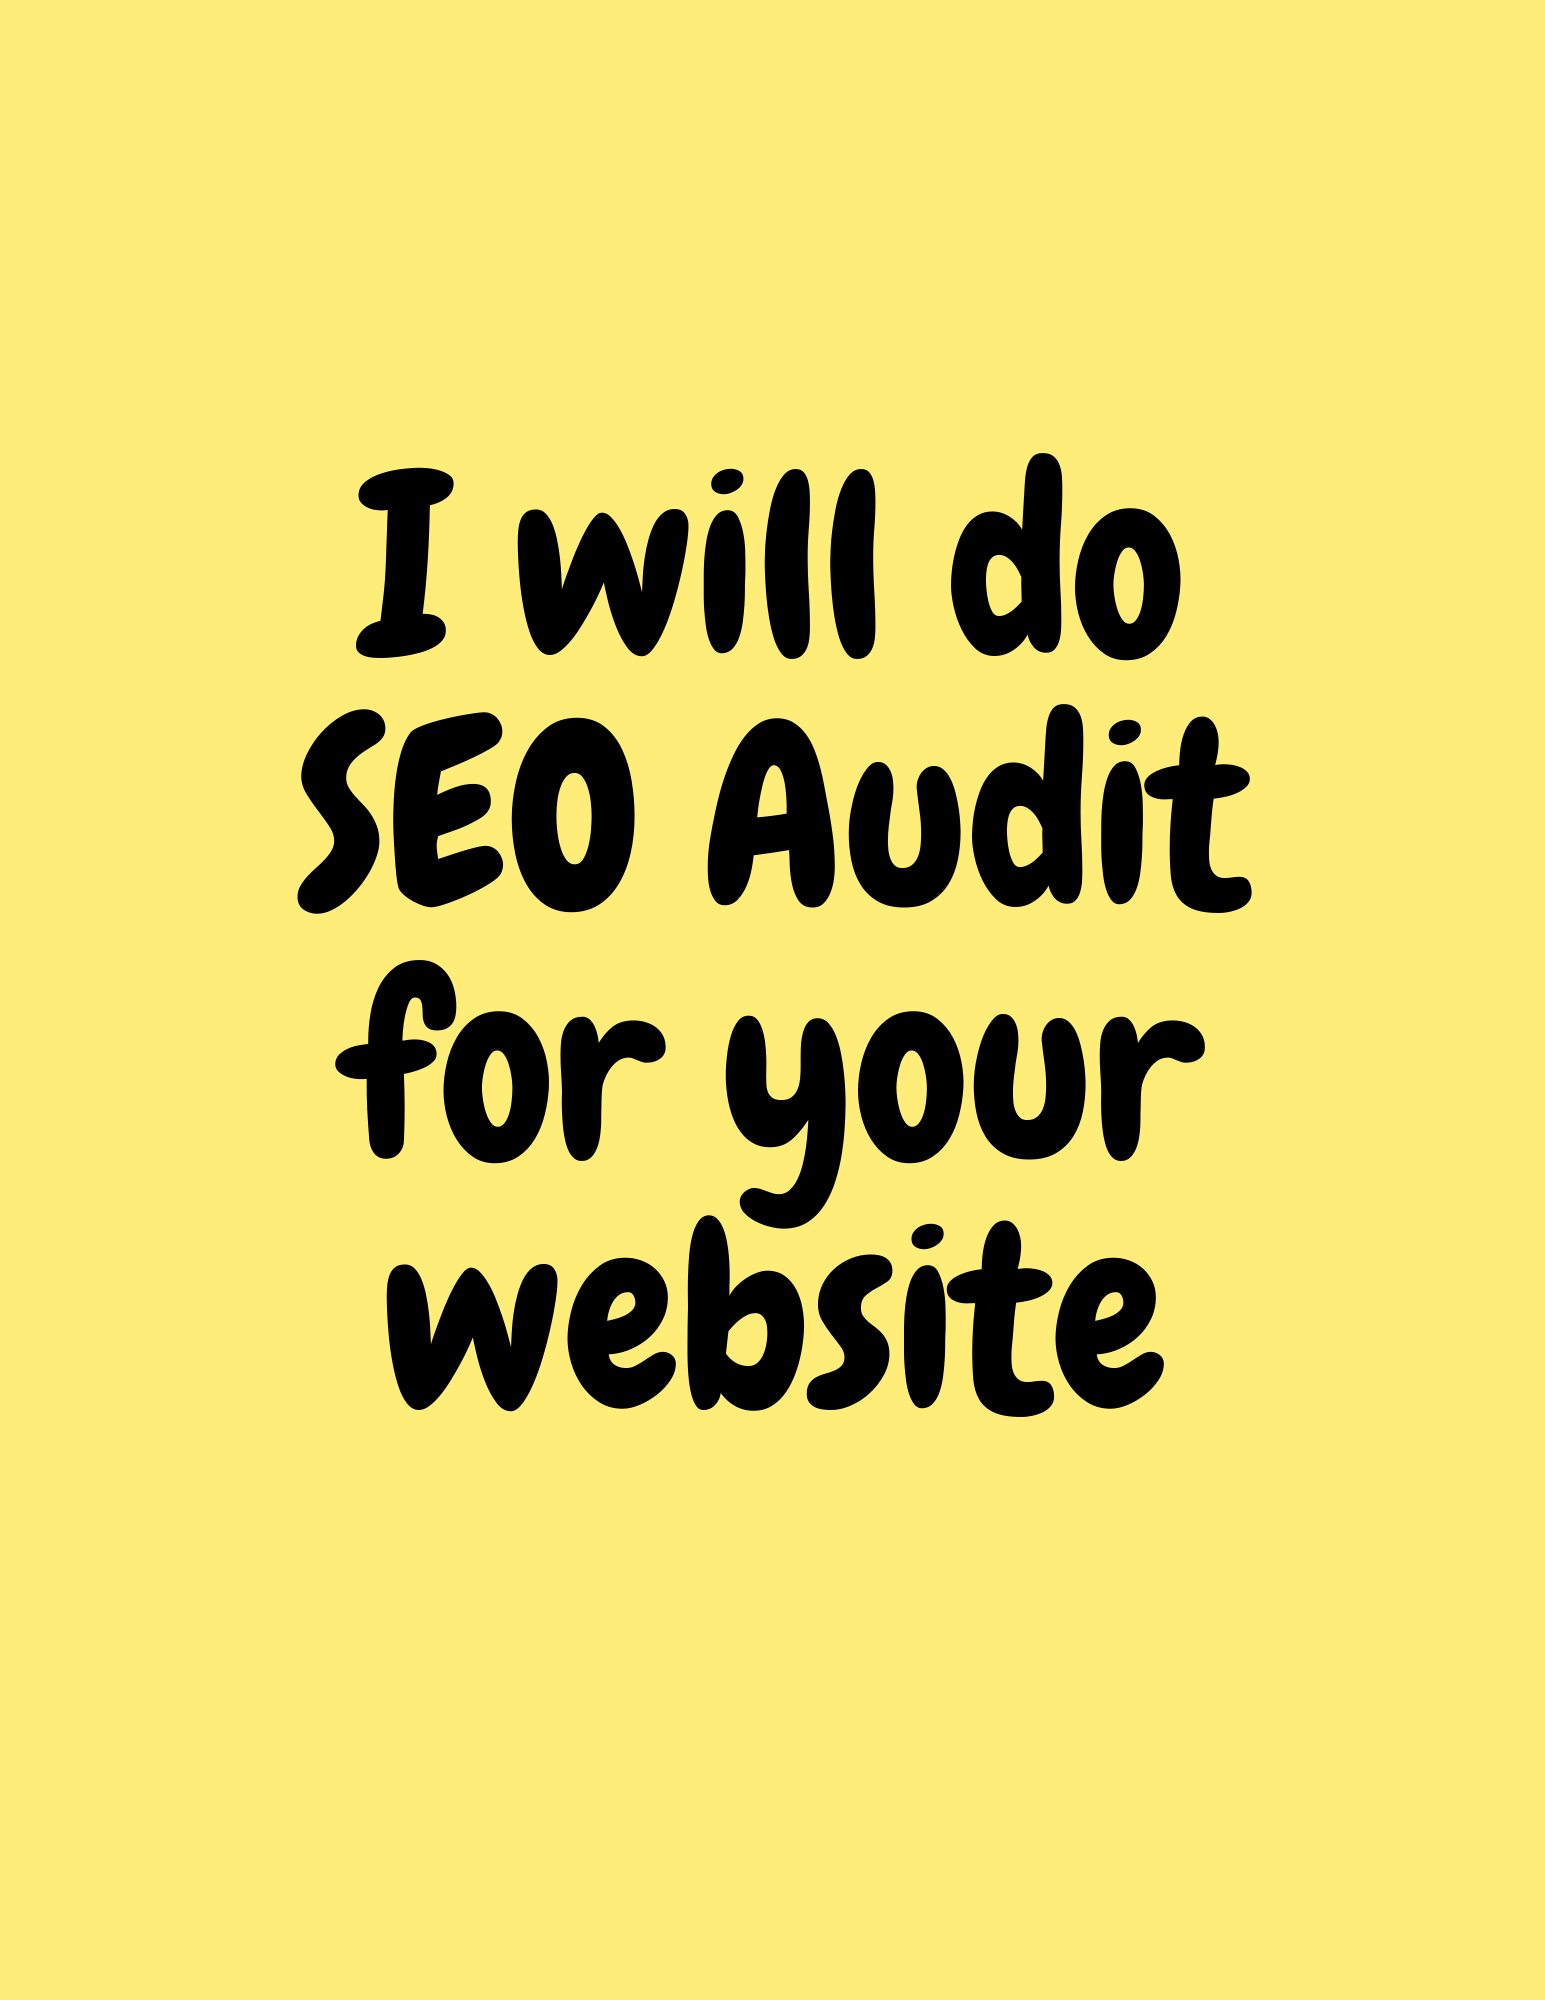 I will do SEO audit for your website